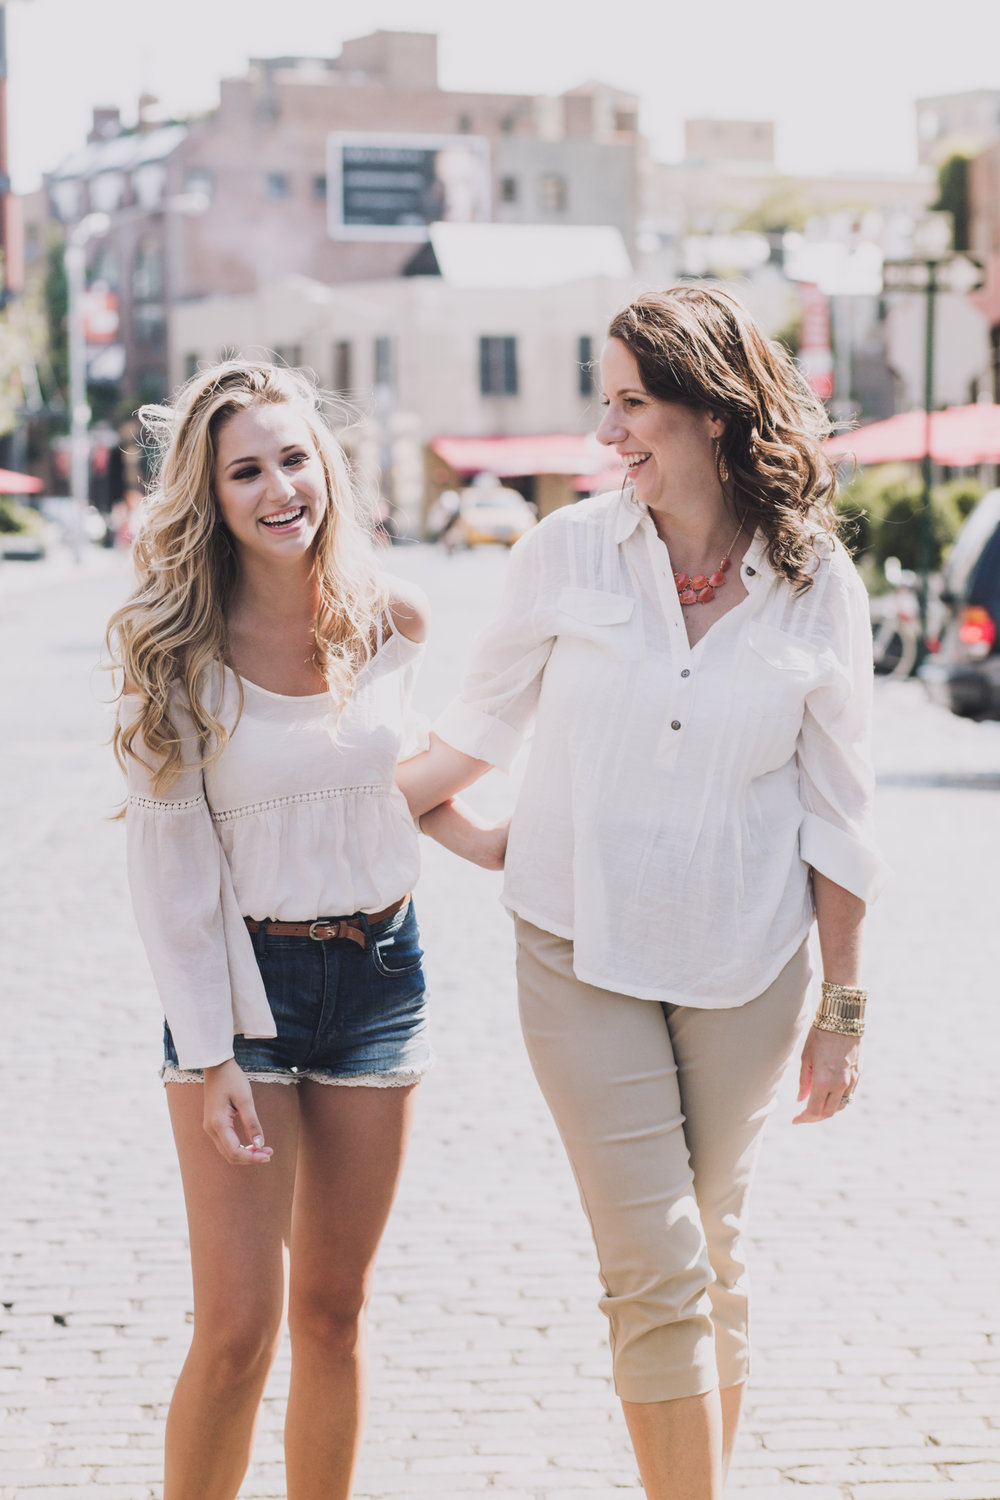 20140712-031-mom_daughter_nyc_portraits.jpg